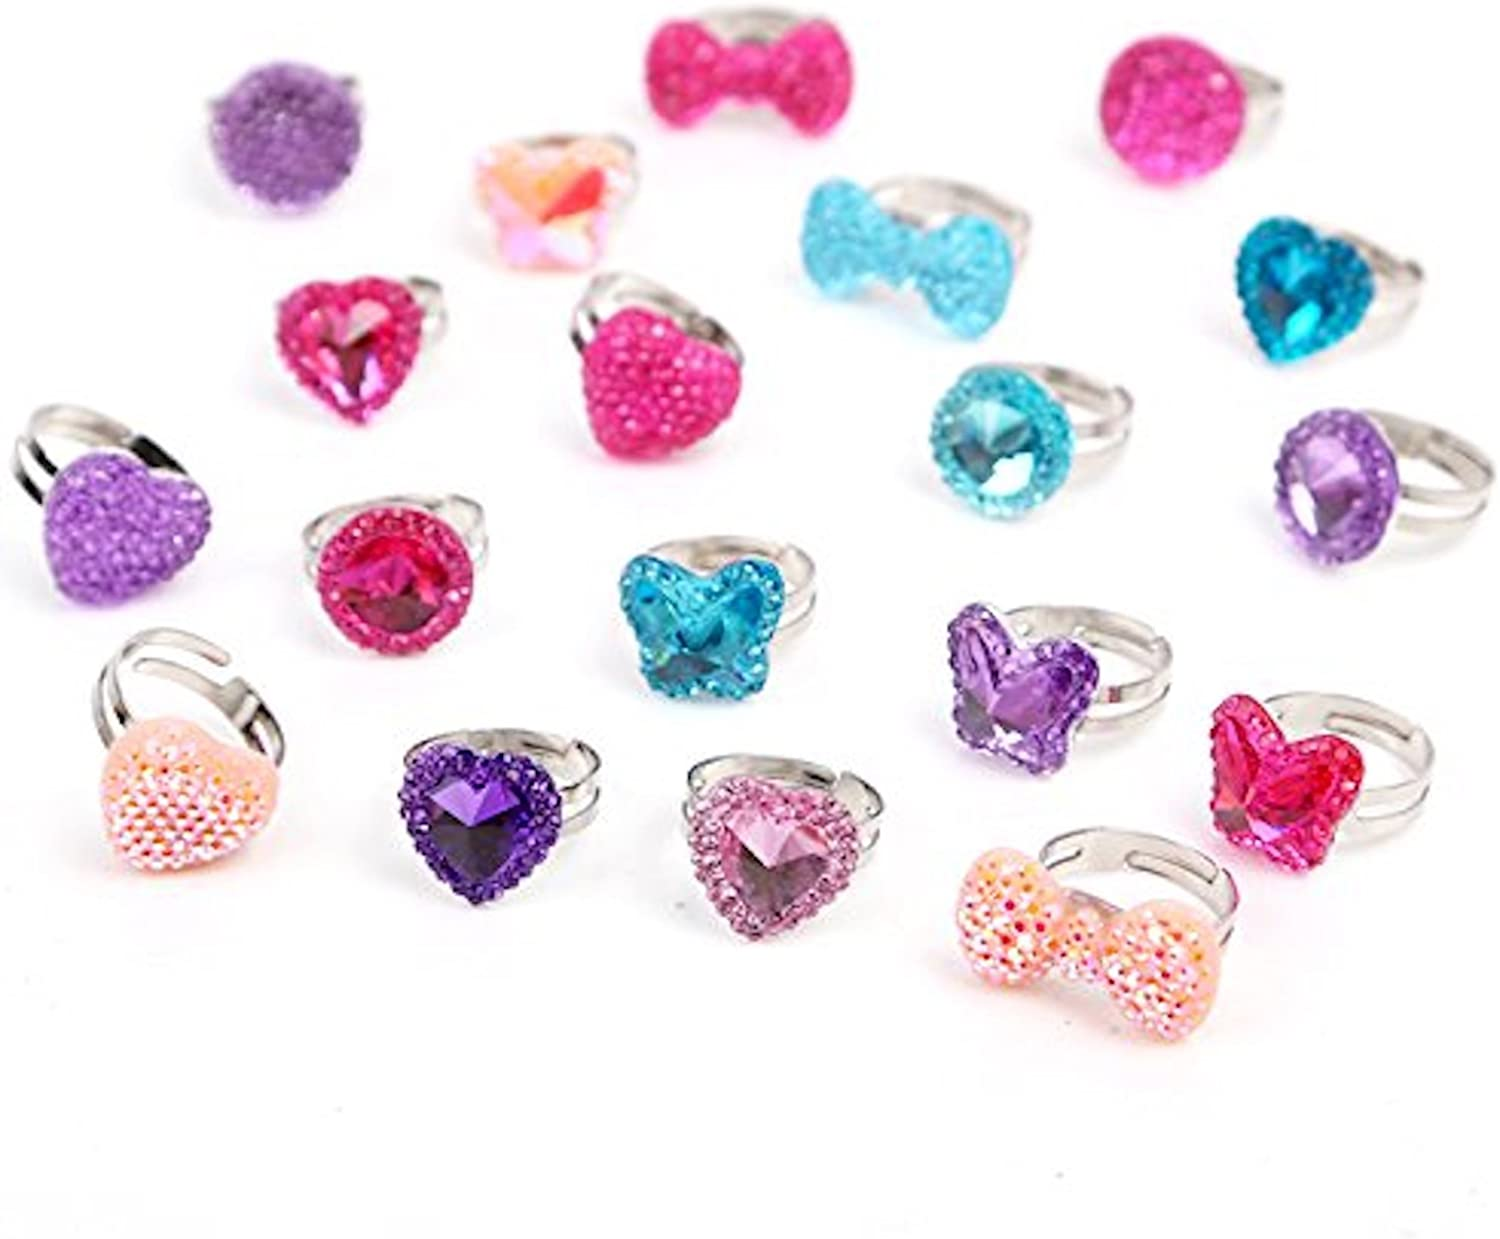 Beyond Dreams® 13 Kids Rings for Girls | Adjustable Ring Set for Children  Jewellery | Cute Silver Finger Accessories | Birthday Gifts for Princess  Party Baby Shower Parties: Amazon.co.uk: Clothing